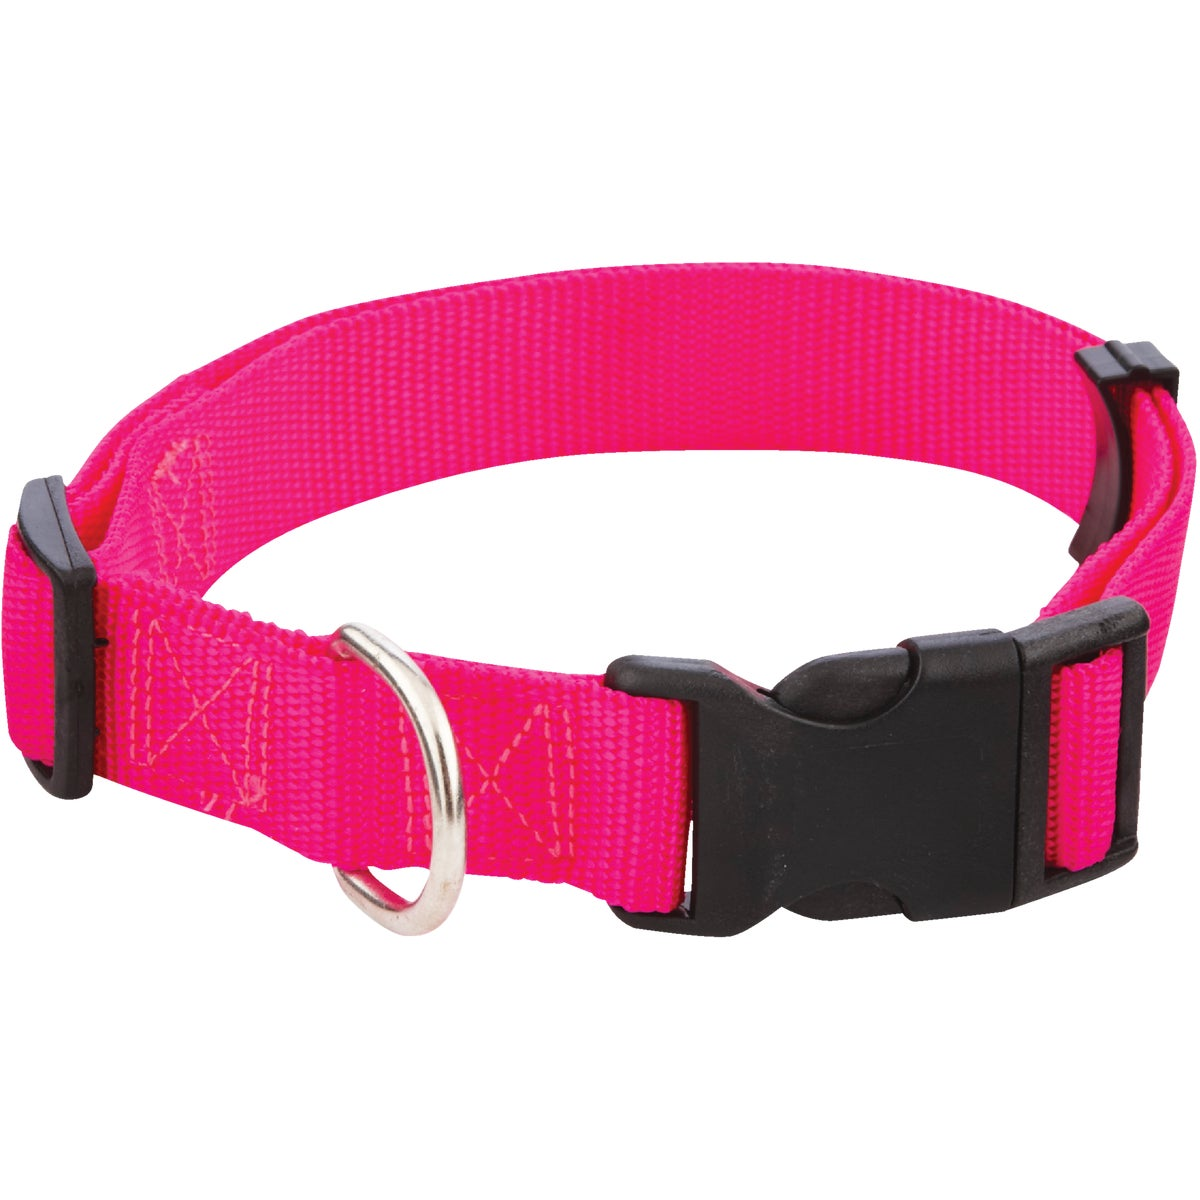 1X18-26 FASHION COLLAR - 34143 by Westminster Pet